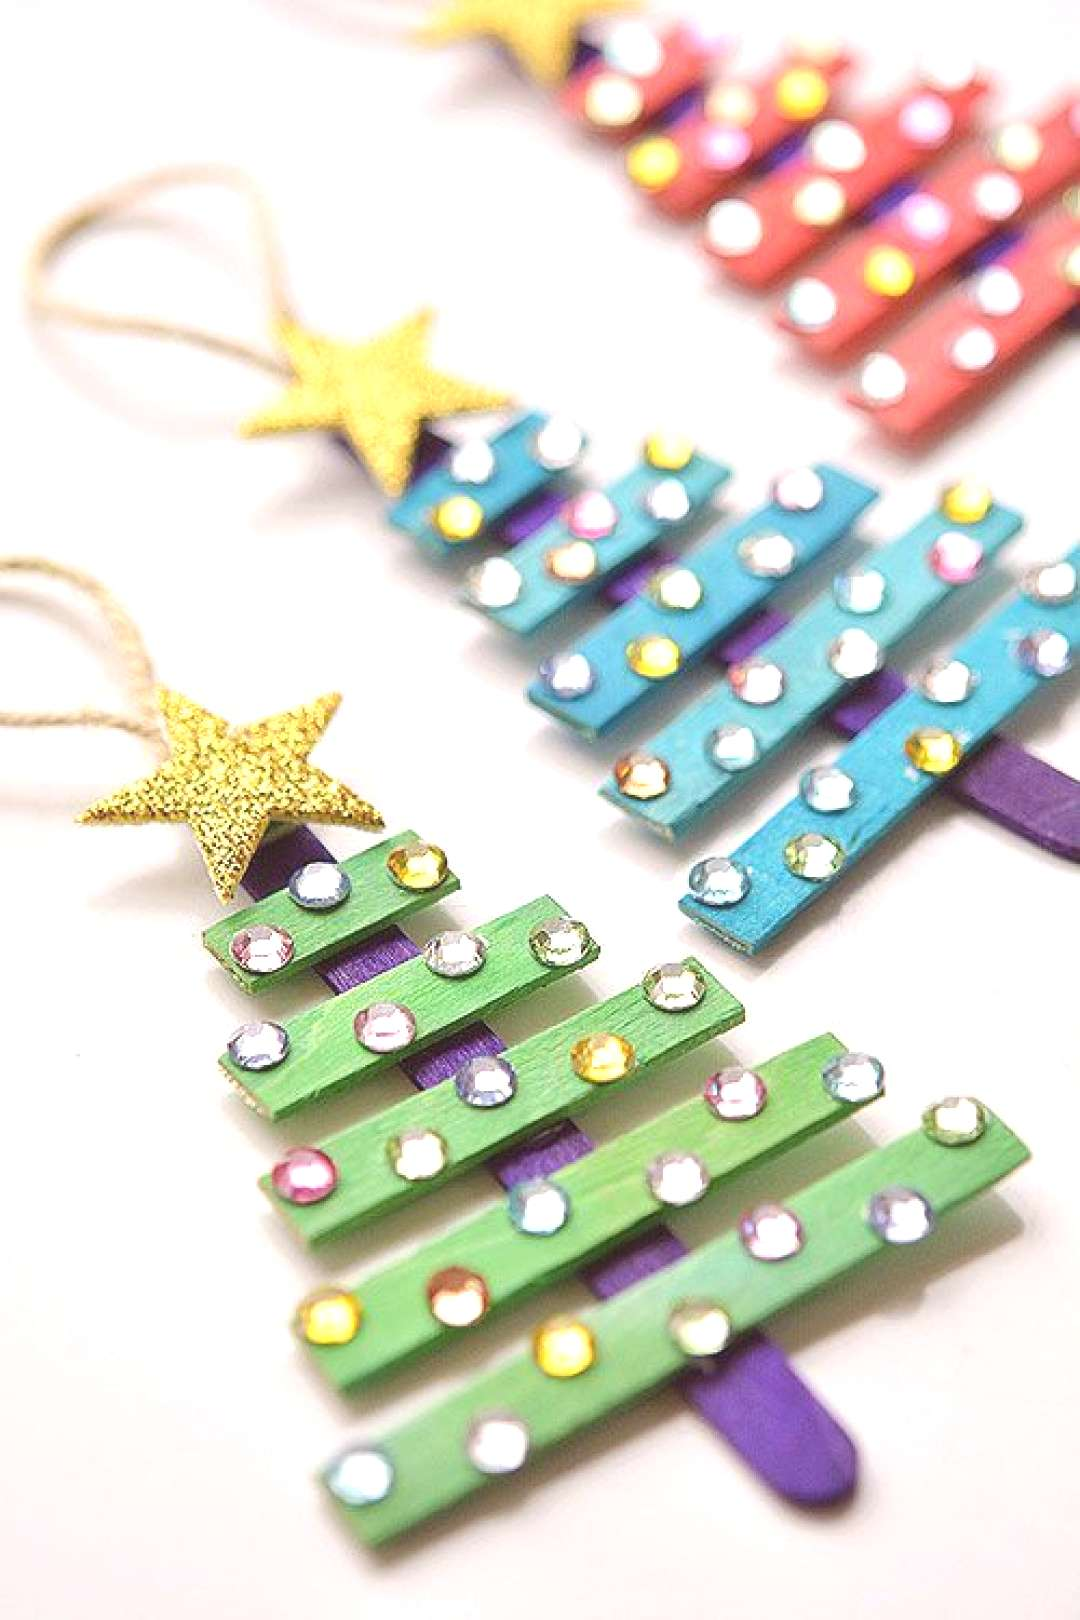 These popsicle stick Christmas trees are SO EASY to make and they're so beautiful! The kids loved d